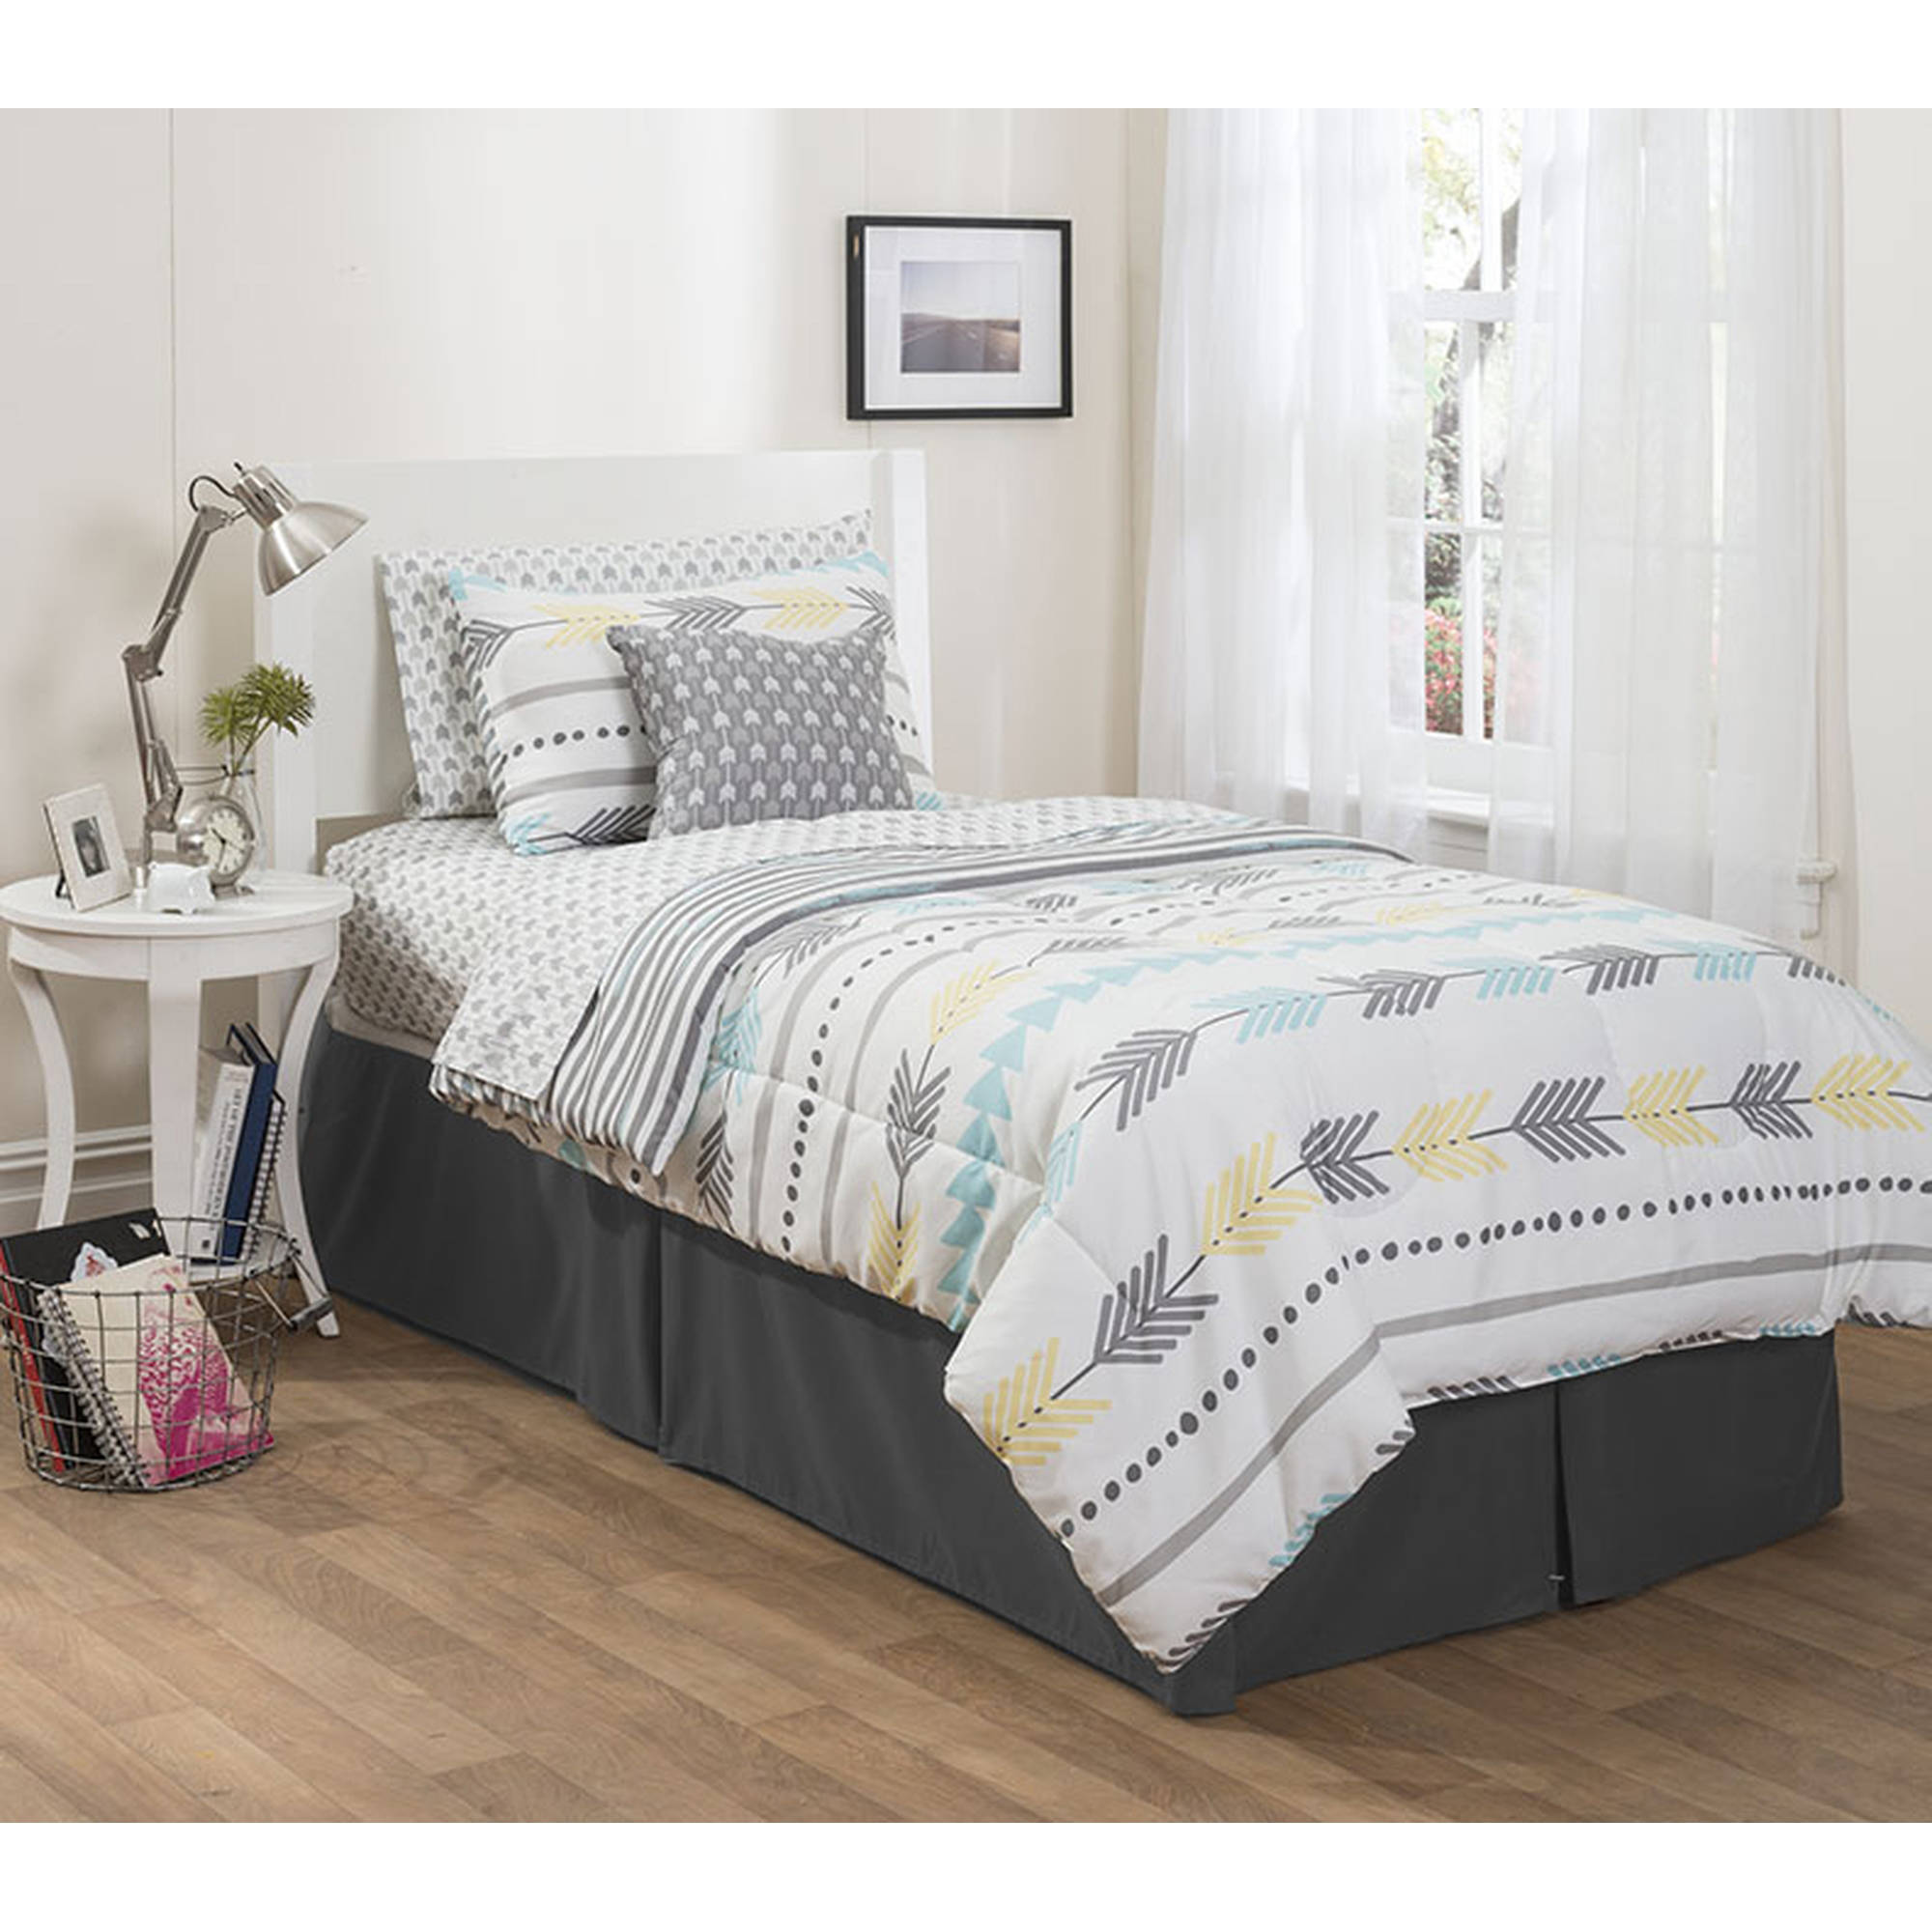 Formula Arrow Novelty Bed in a Bag Bedding Set Walmart